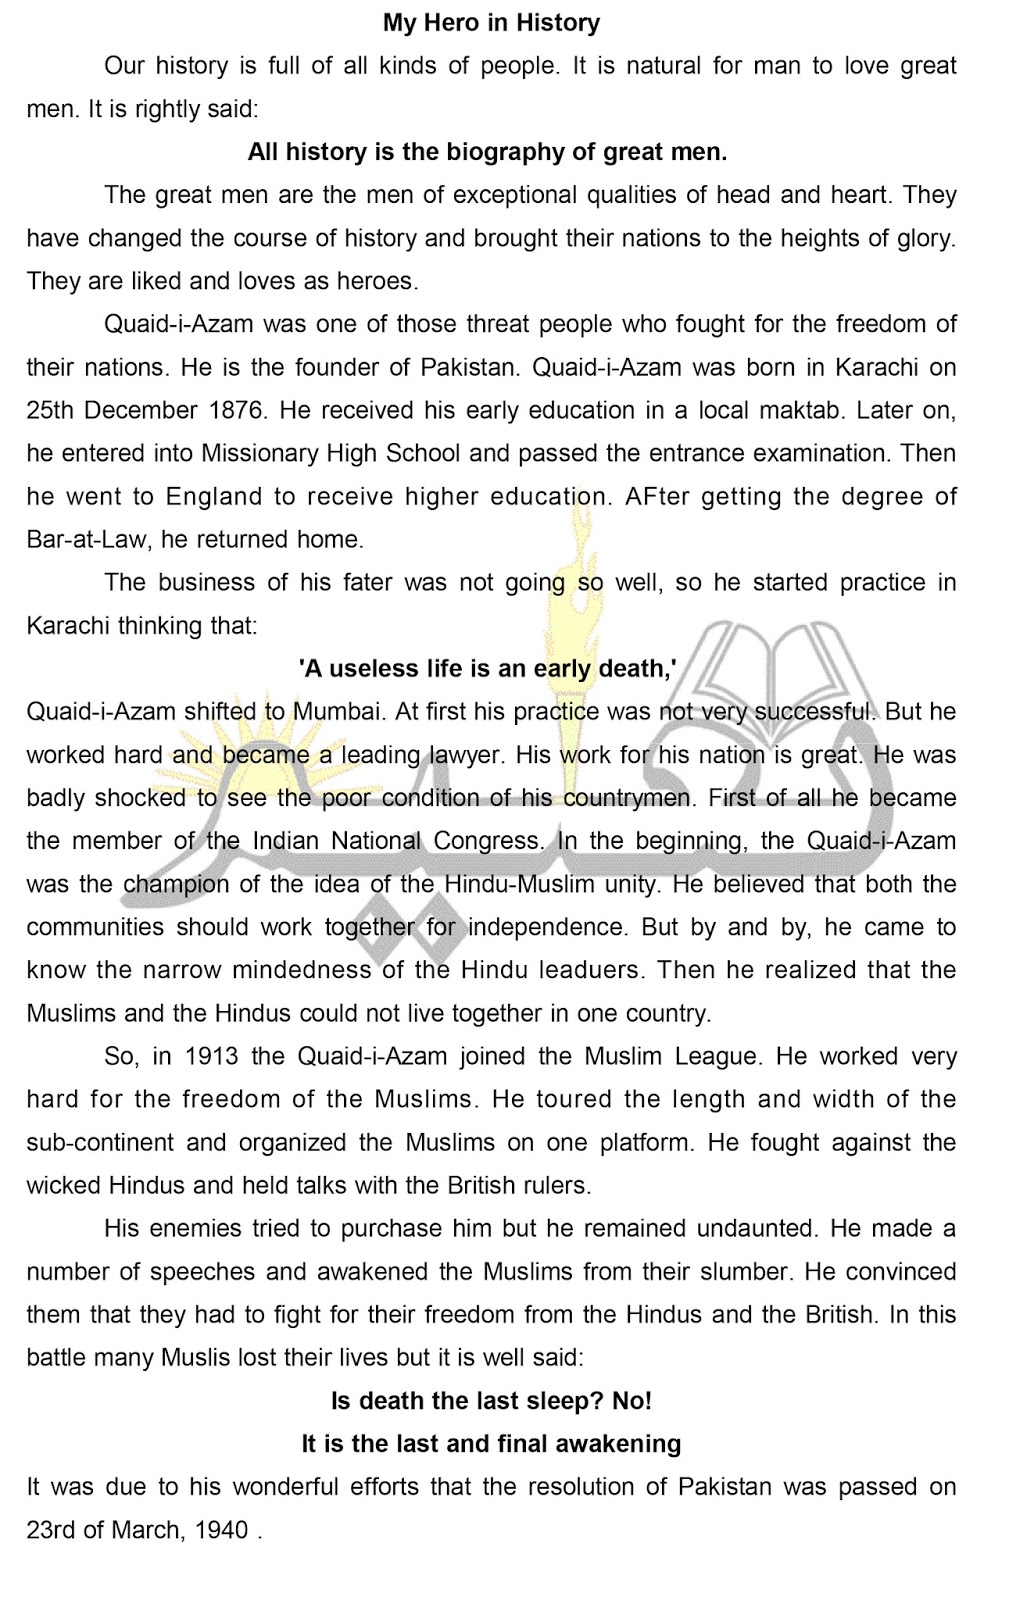 012 Essay01 An Essay About My Hero Fascinating Heroine Teacher 500 Words A Narrative Full